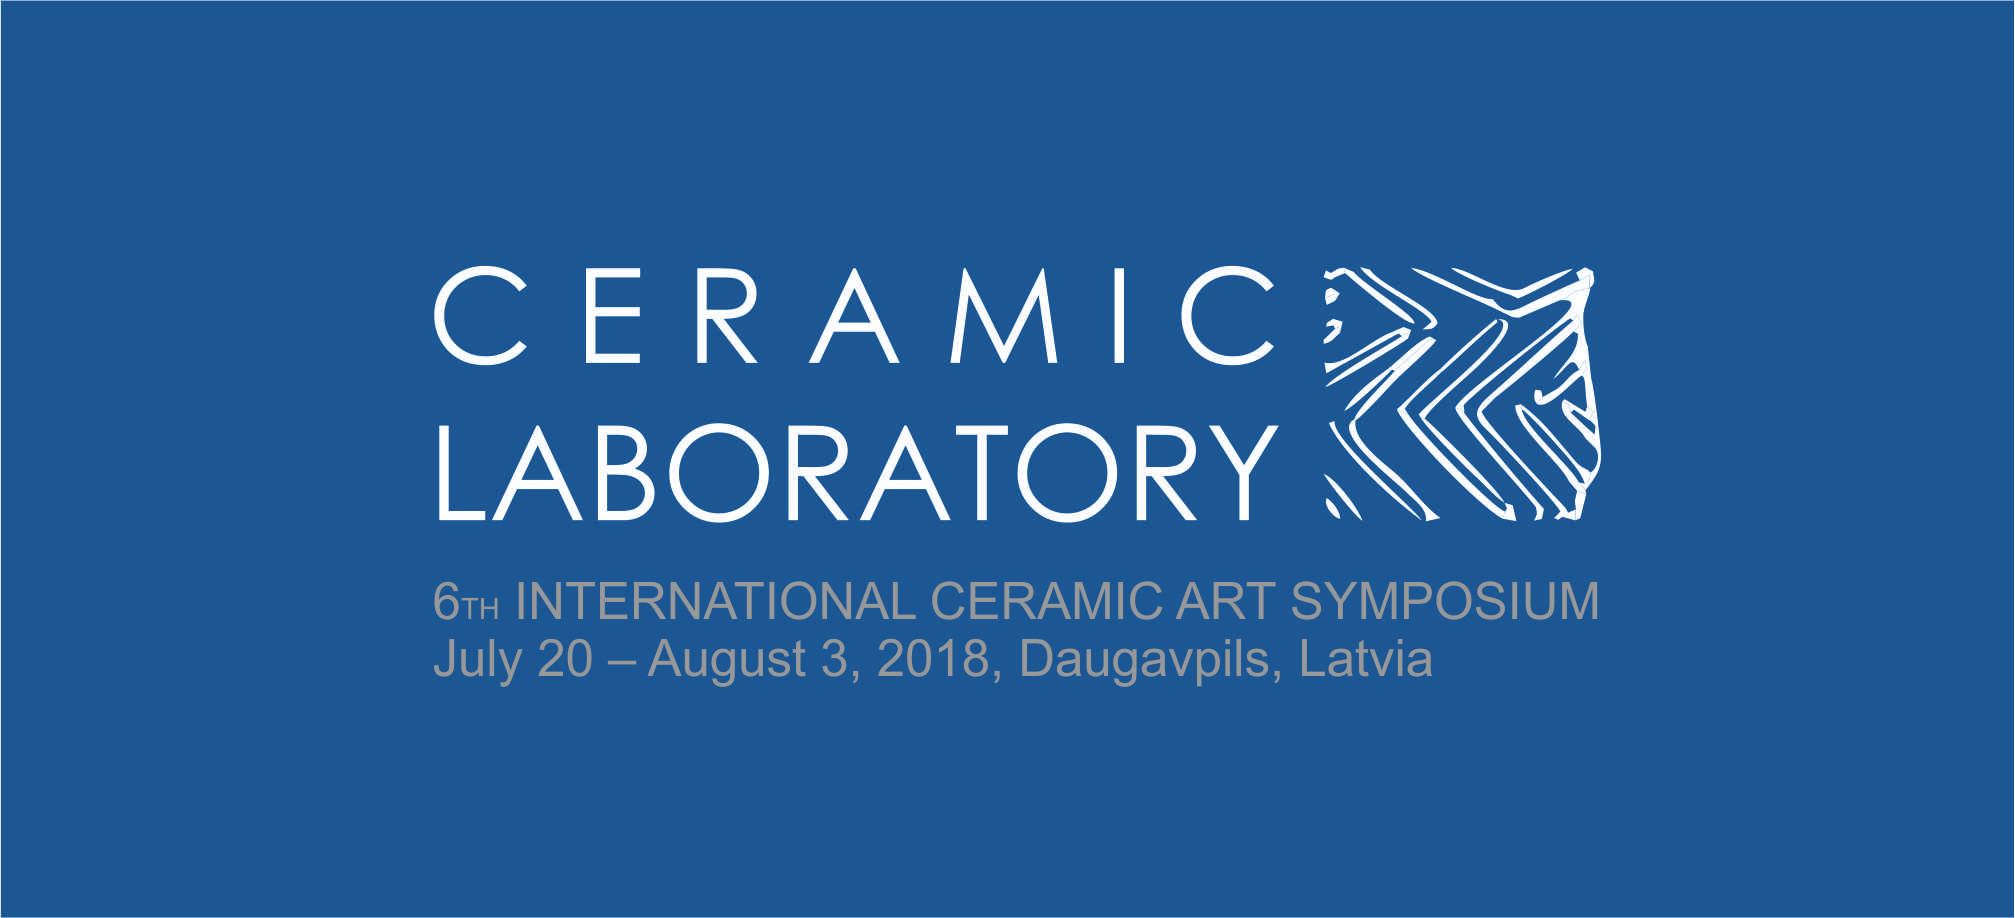 "Firing Festival of the International Ceramic Art Symposium ""Ceramic Laboratory"""